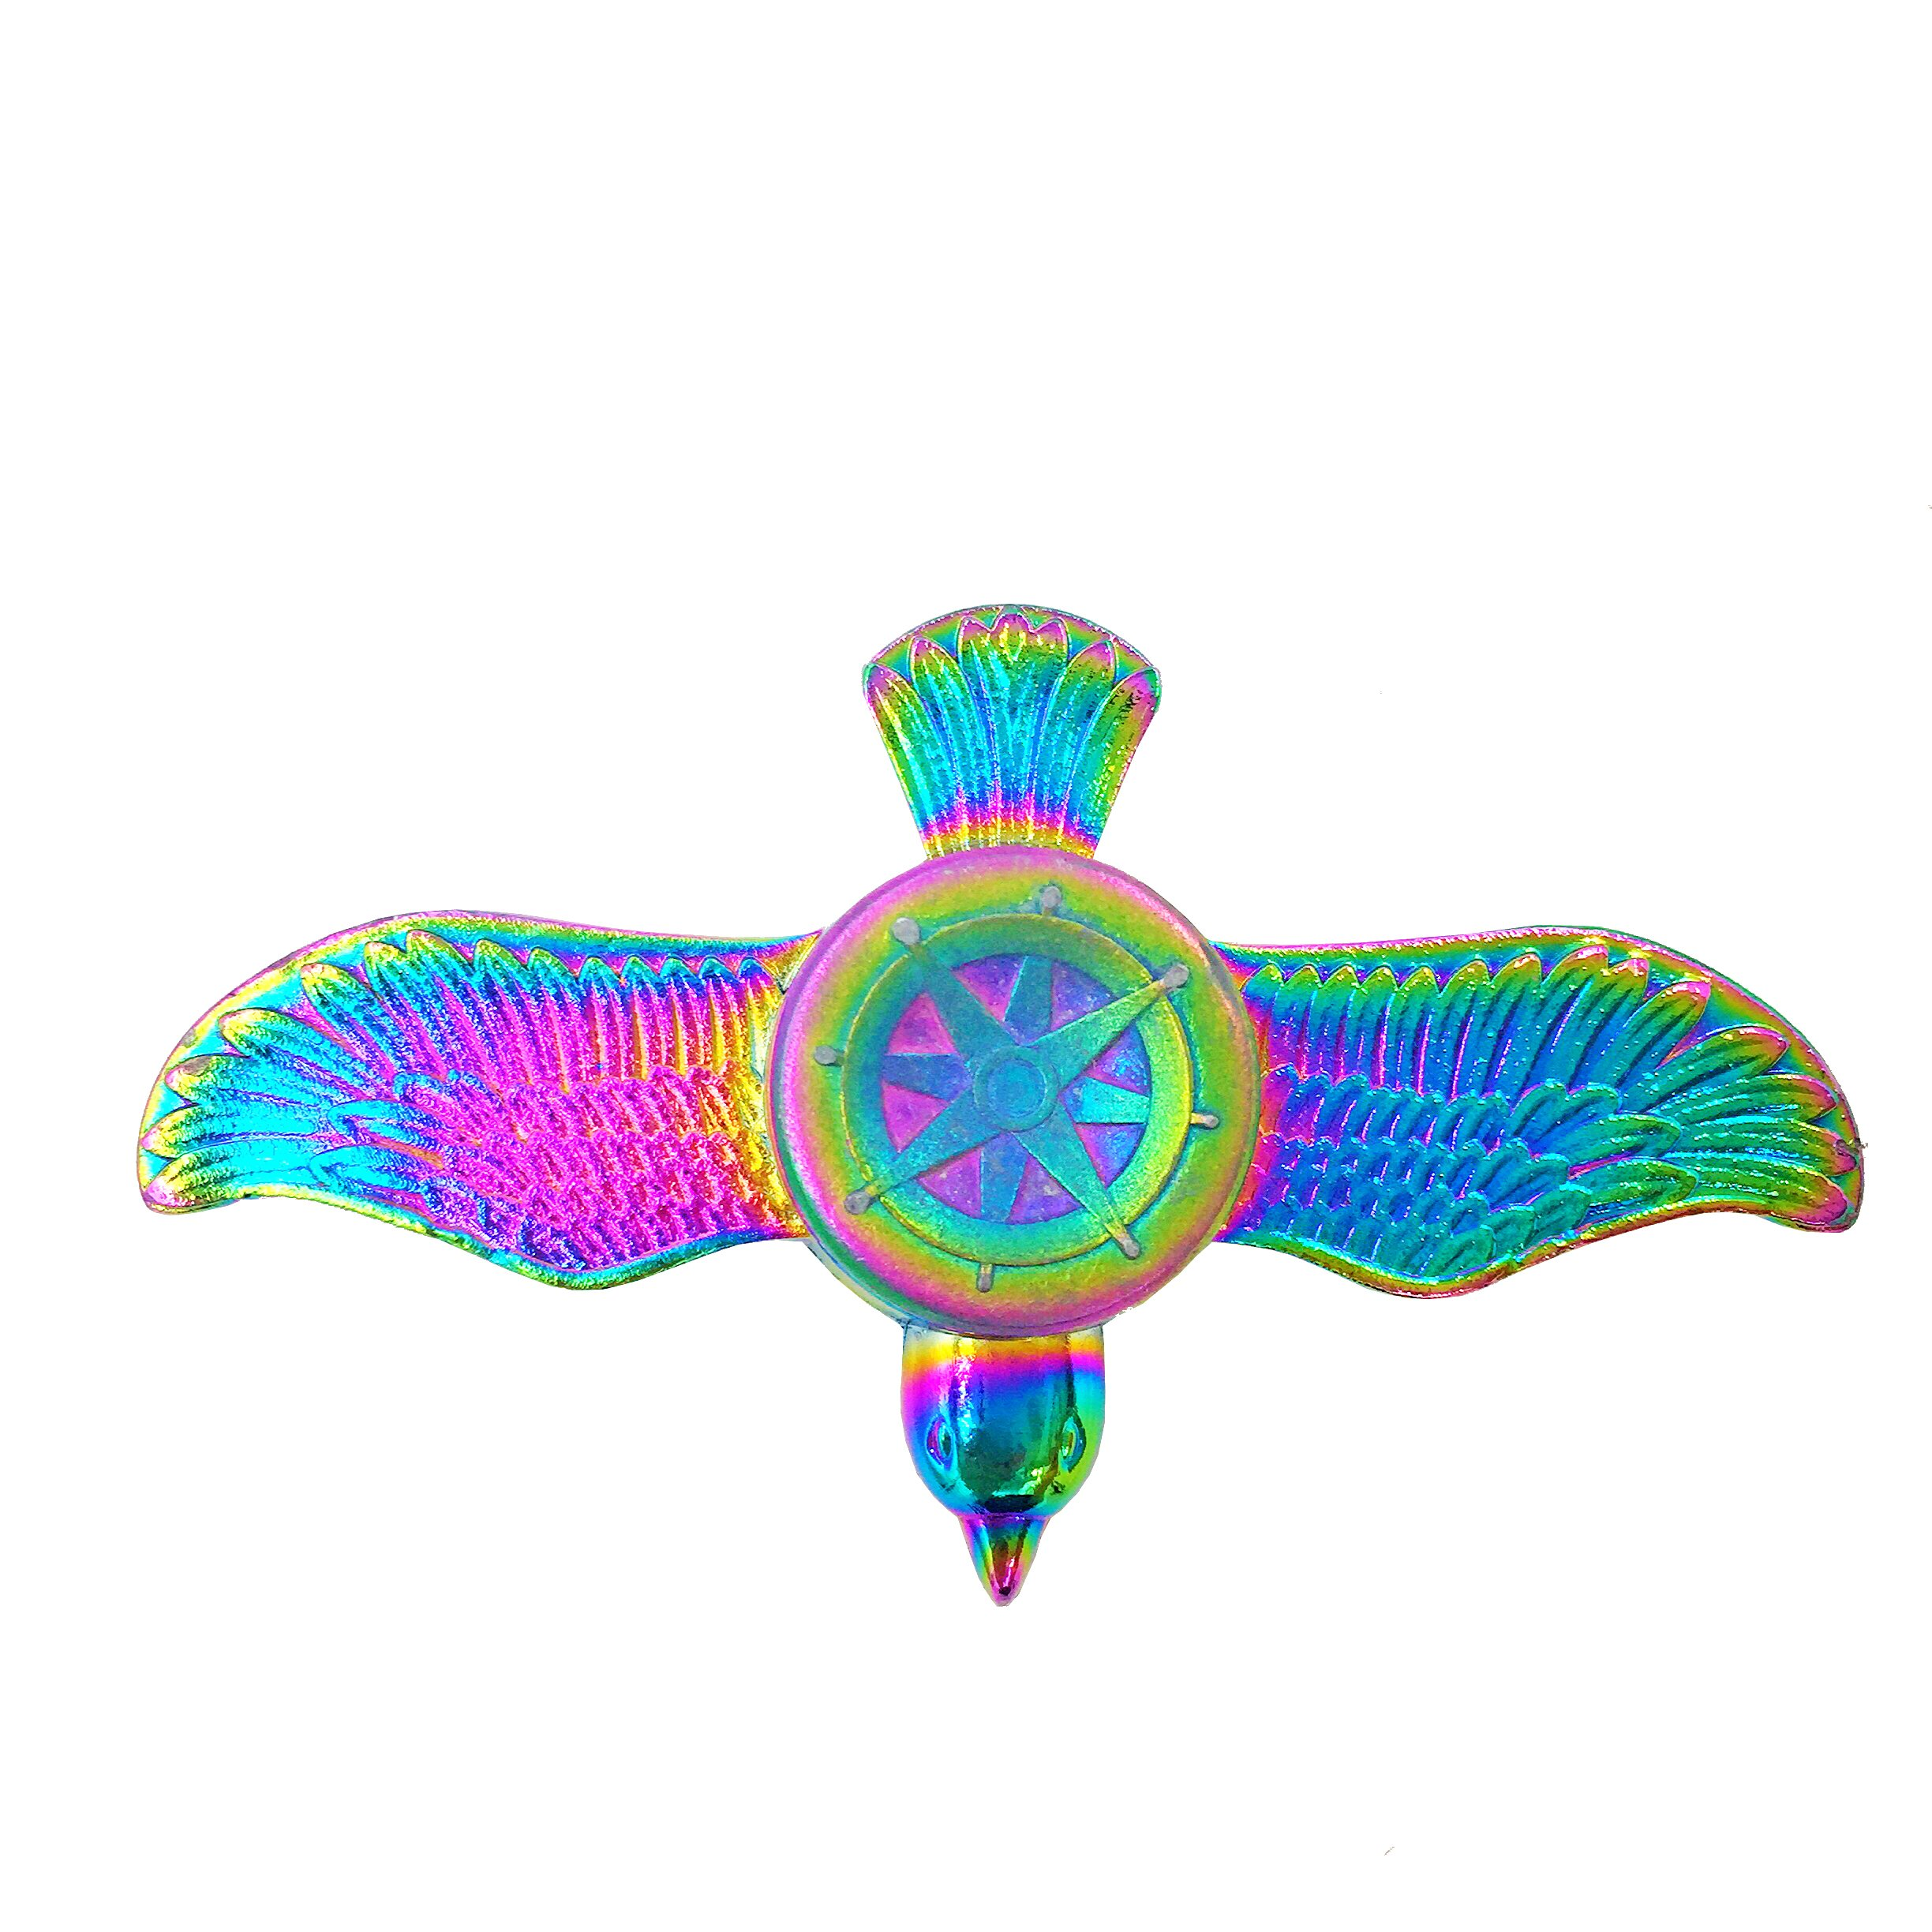 Fidget Spinner UCLL Bauhinia Flower Hand Spinning Toy EDC Focus Stress Reducer With Headset Decor